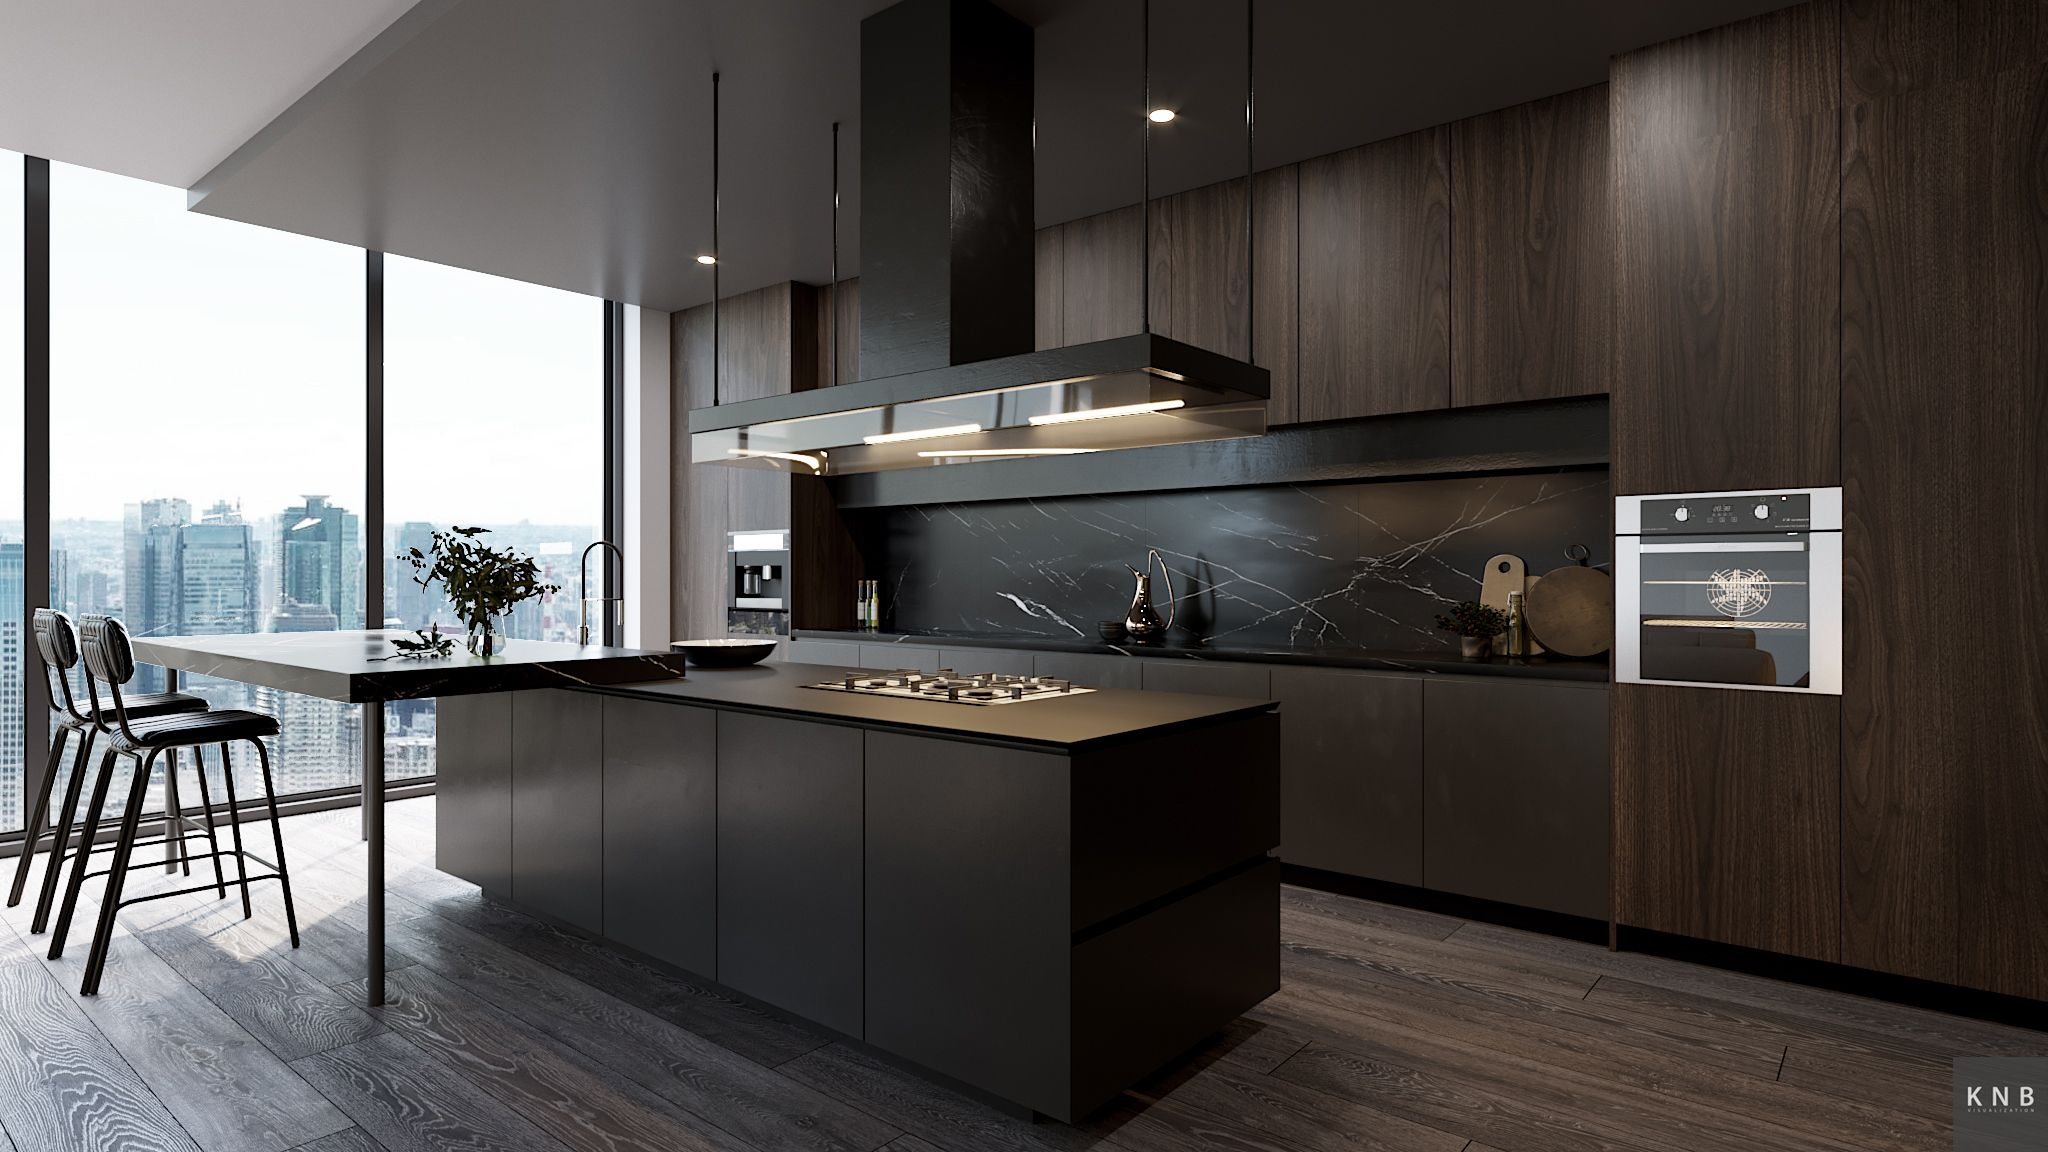 Kitchen Cupboard Uplighters Cgi Interior On Behance Kitchen In 2019 Kitchen Cabinets Home